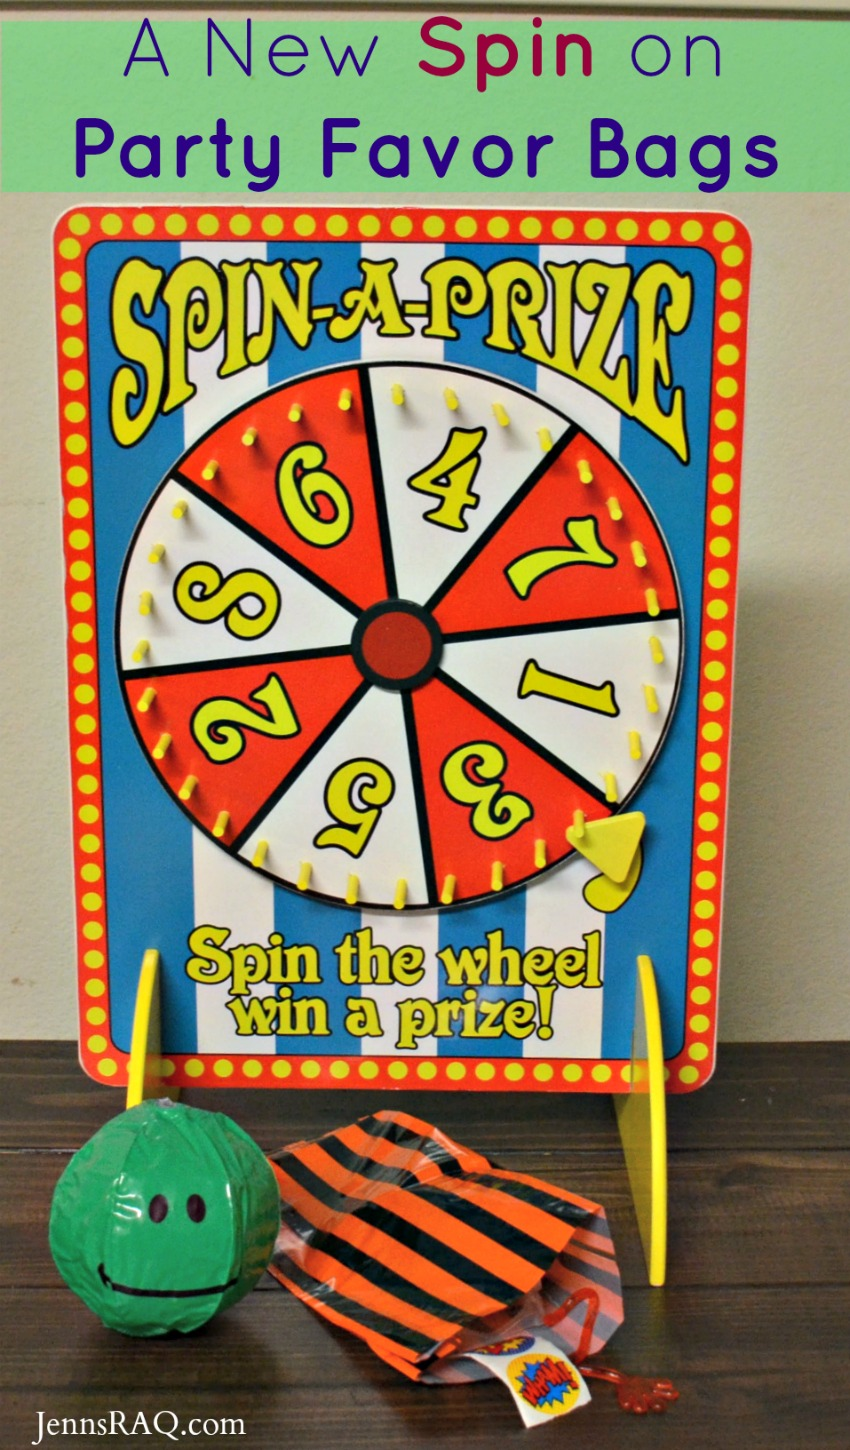 A New Spin on Birthday Favor Bags as seen on JennsRAQ.com